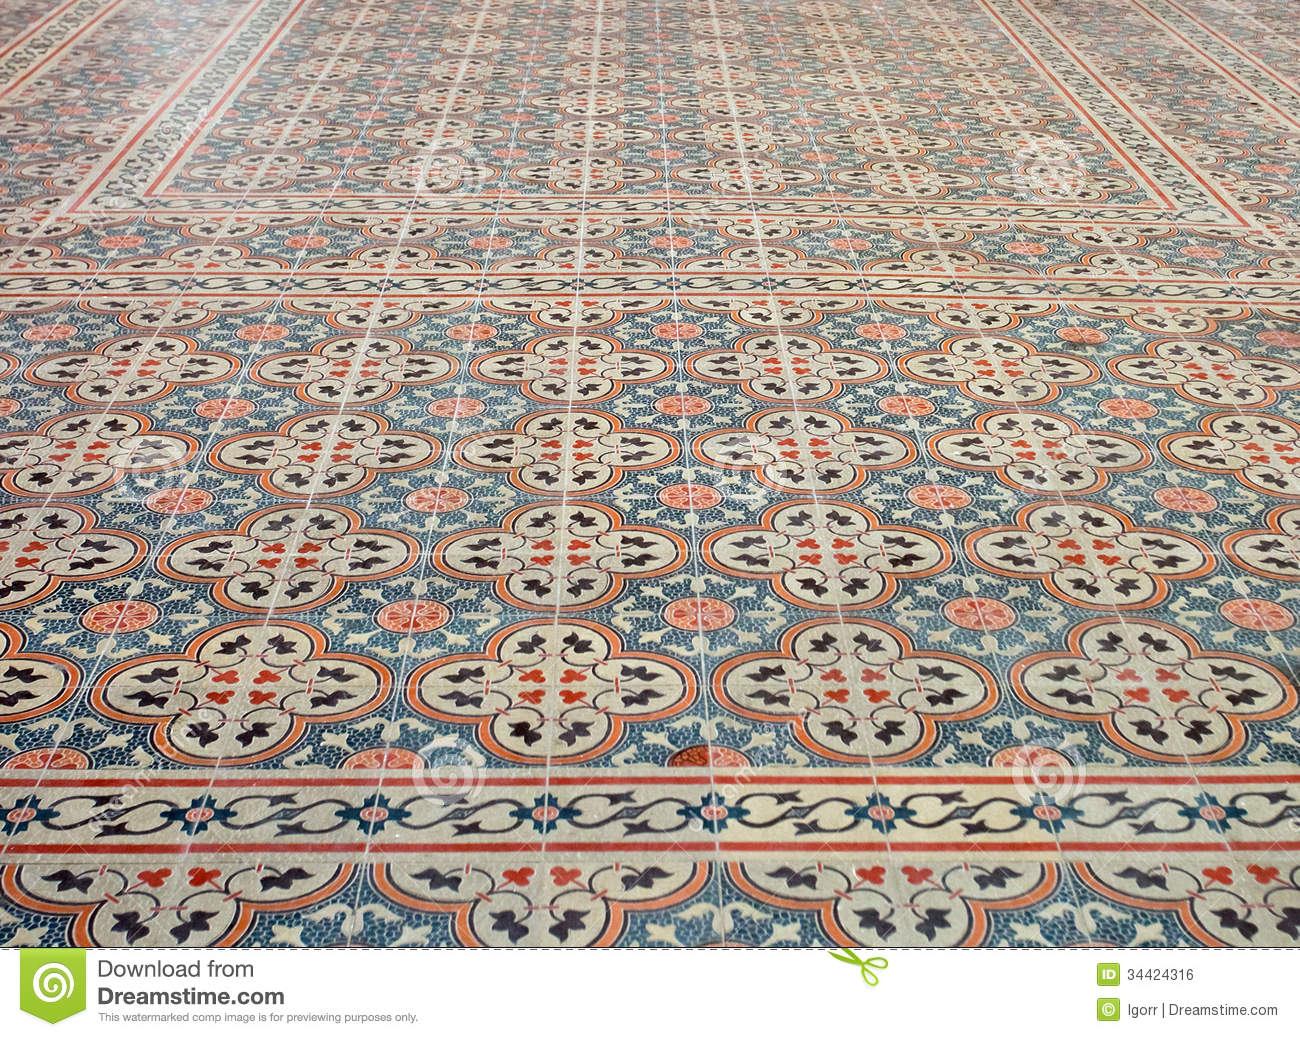 Perfect Royalty Free Stock Photo. Download Mosaic Floor ...